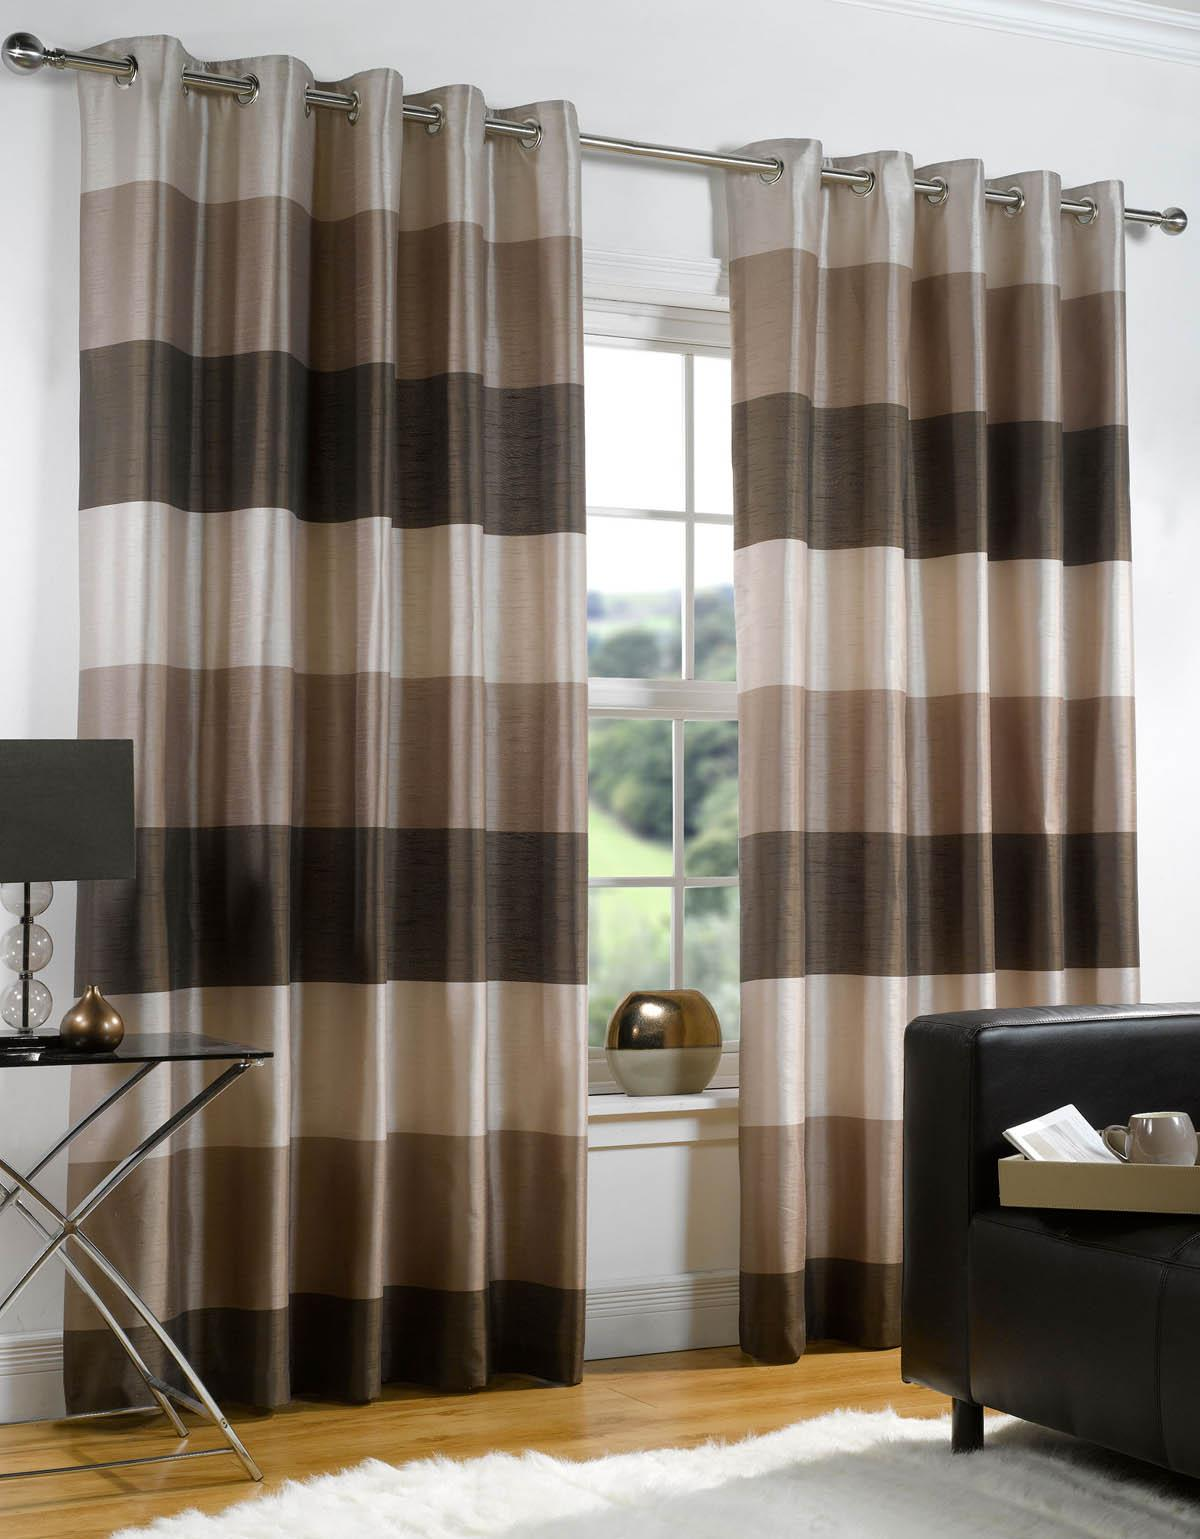 Rio-Chocolate 20+ Hottest Curtain Designs for 2018